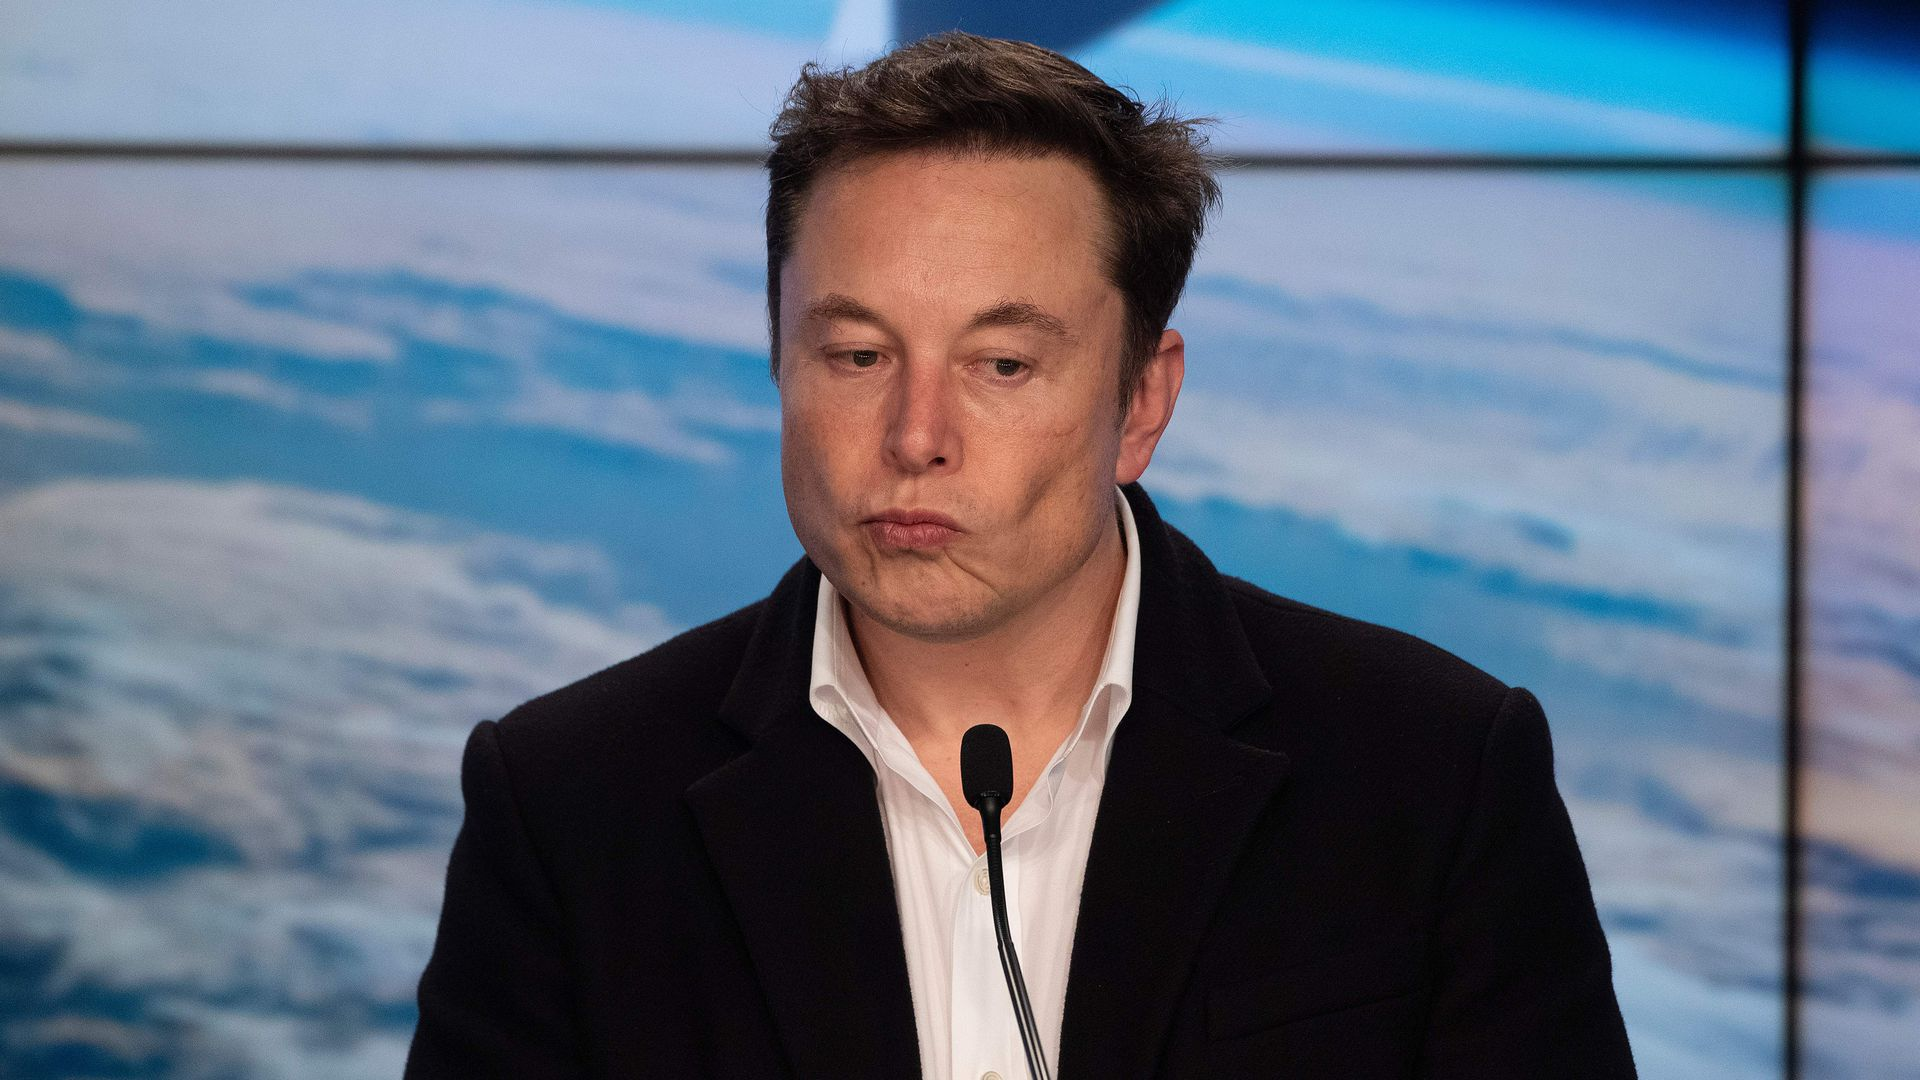 In this image, Elon Musk looks down while standing in front of a microphone. He's wearing a suit with no tie.